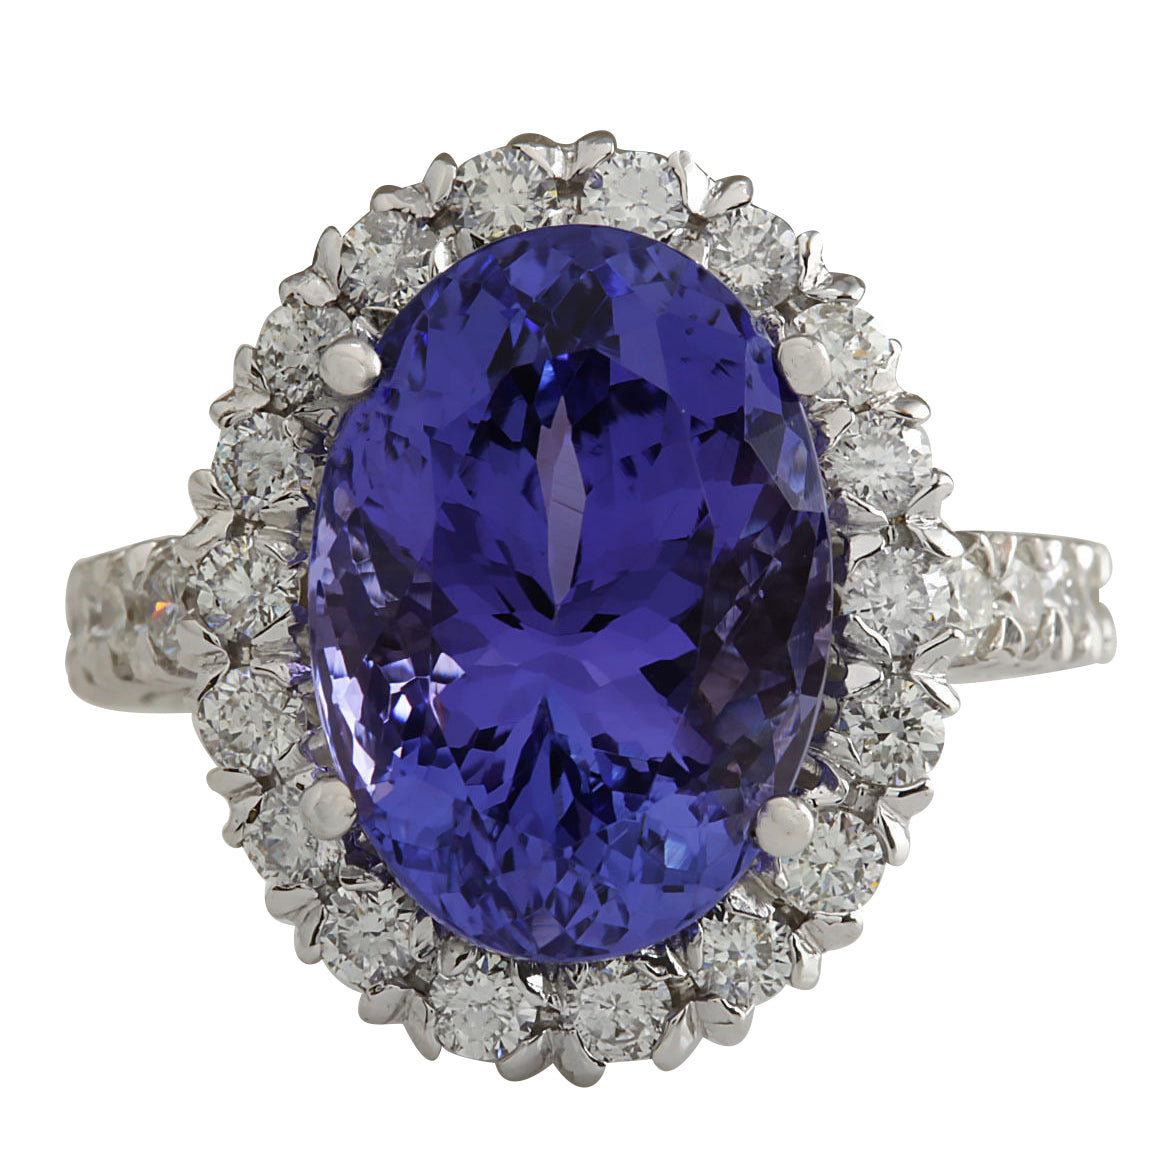 10.24 Carat Natural Tanzanite 18K White Gold Diamond Ring